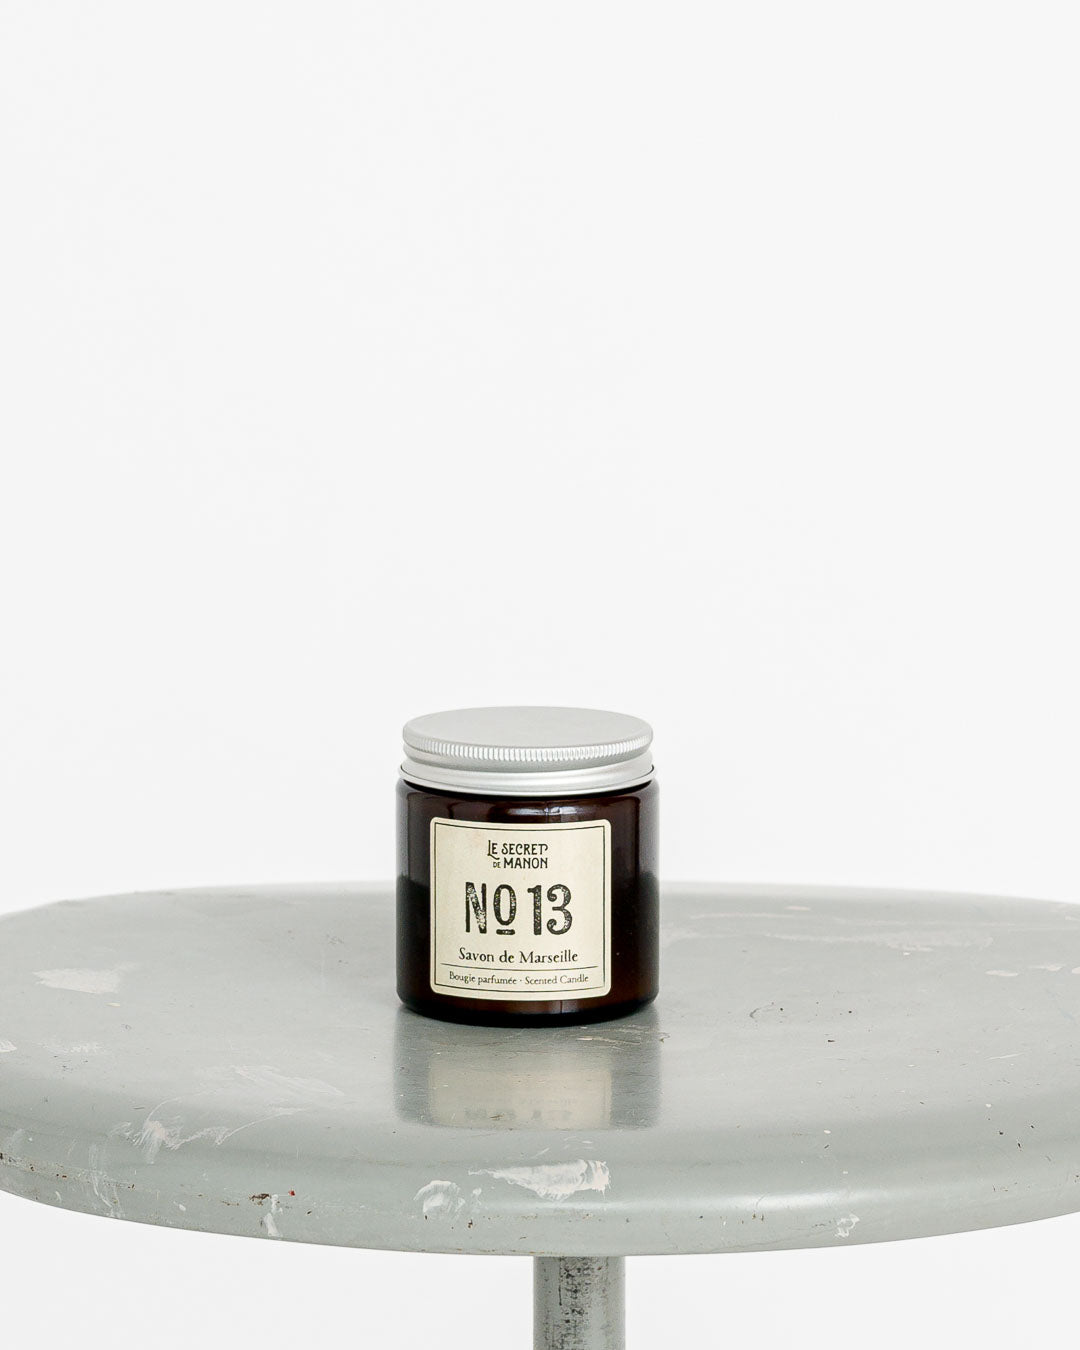 Les choses simples // Scented Candle No. 13